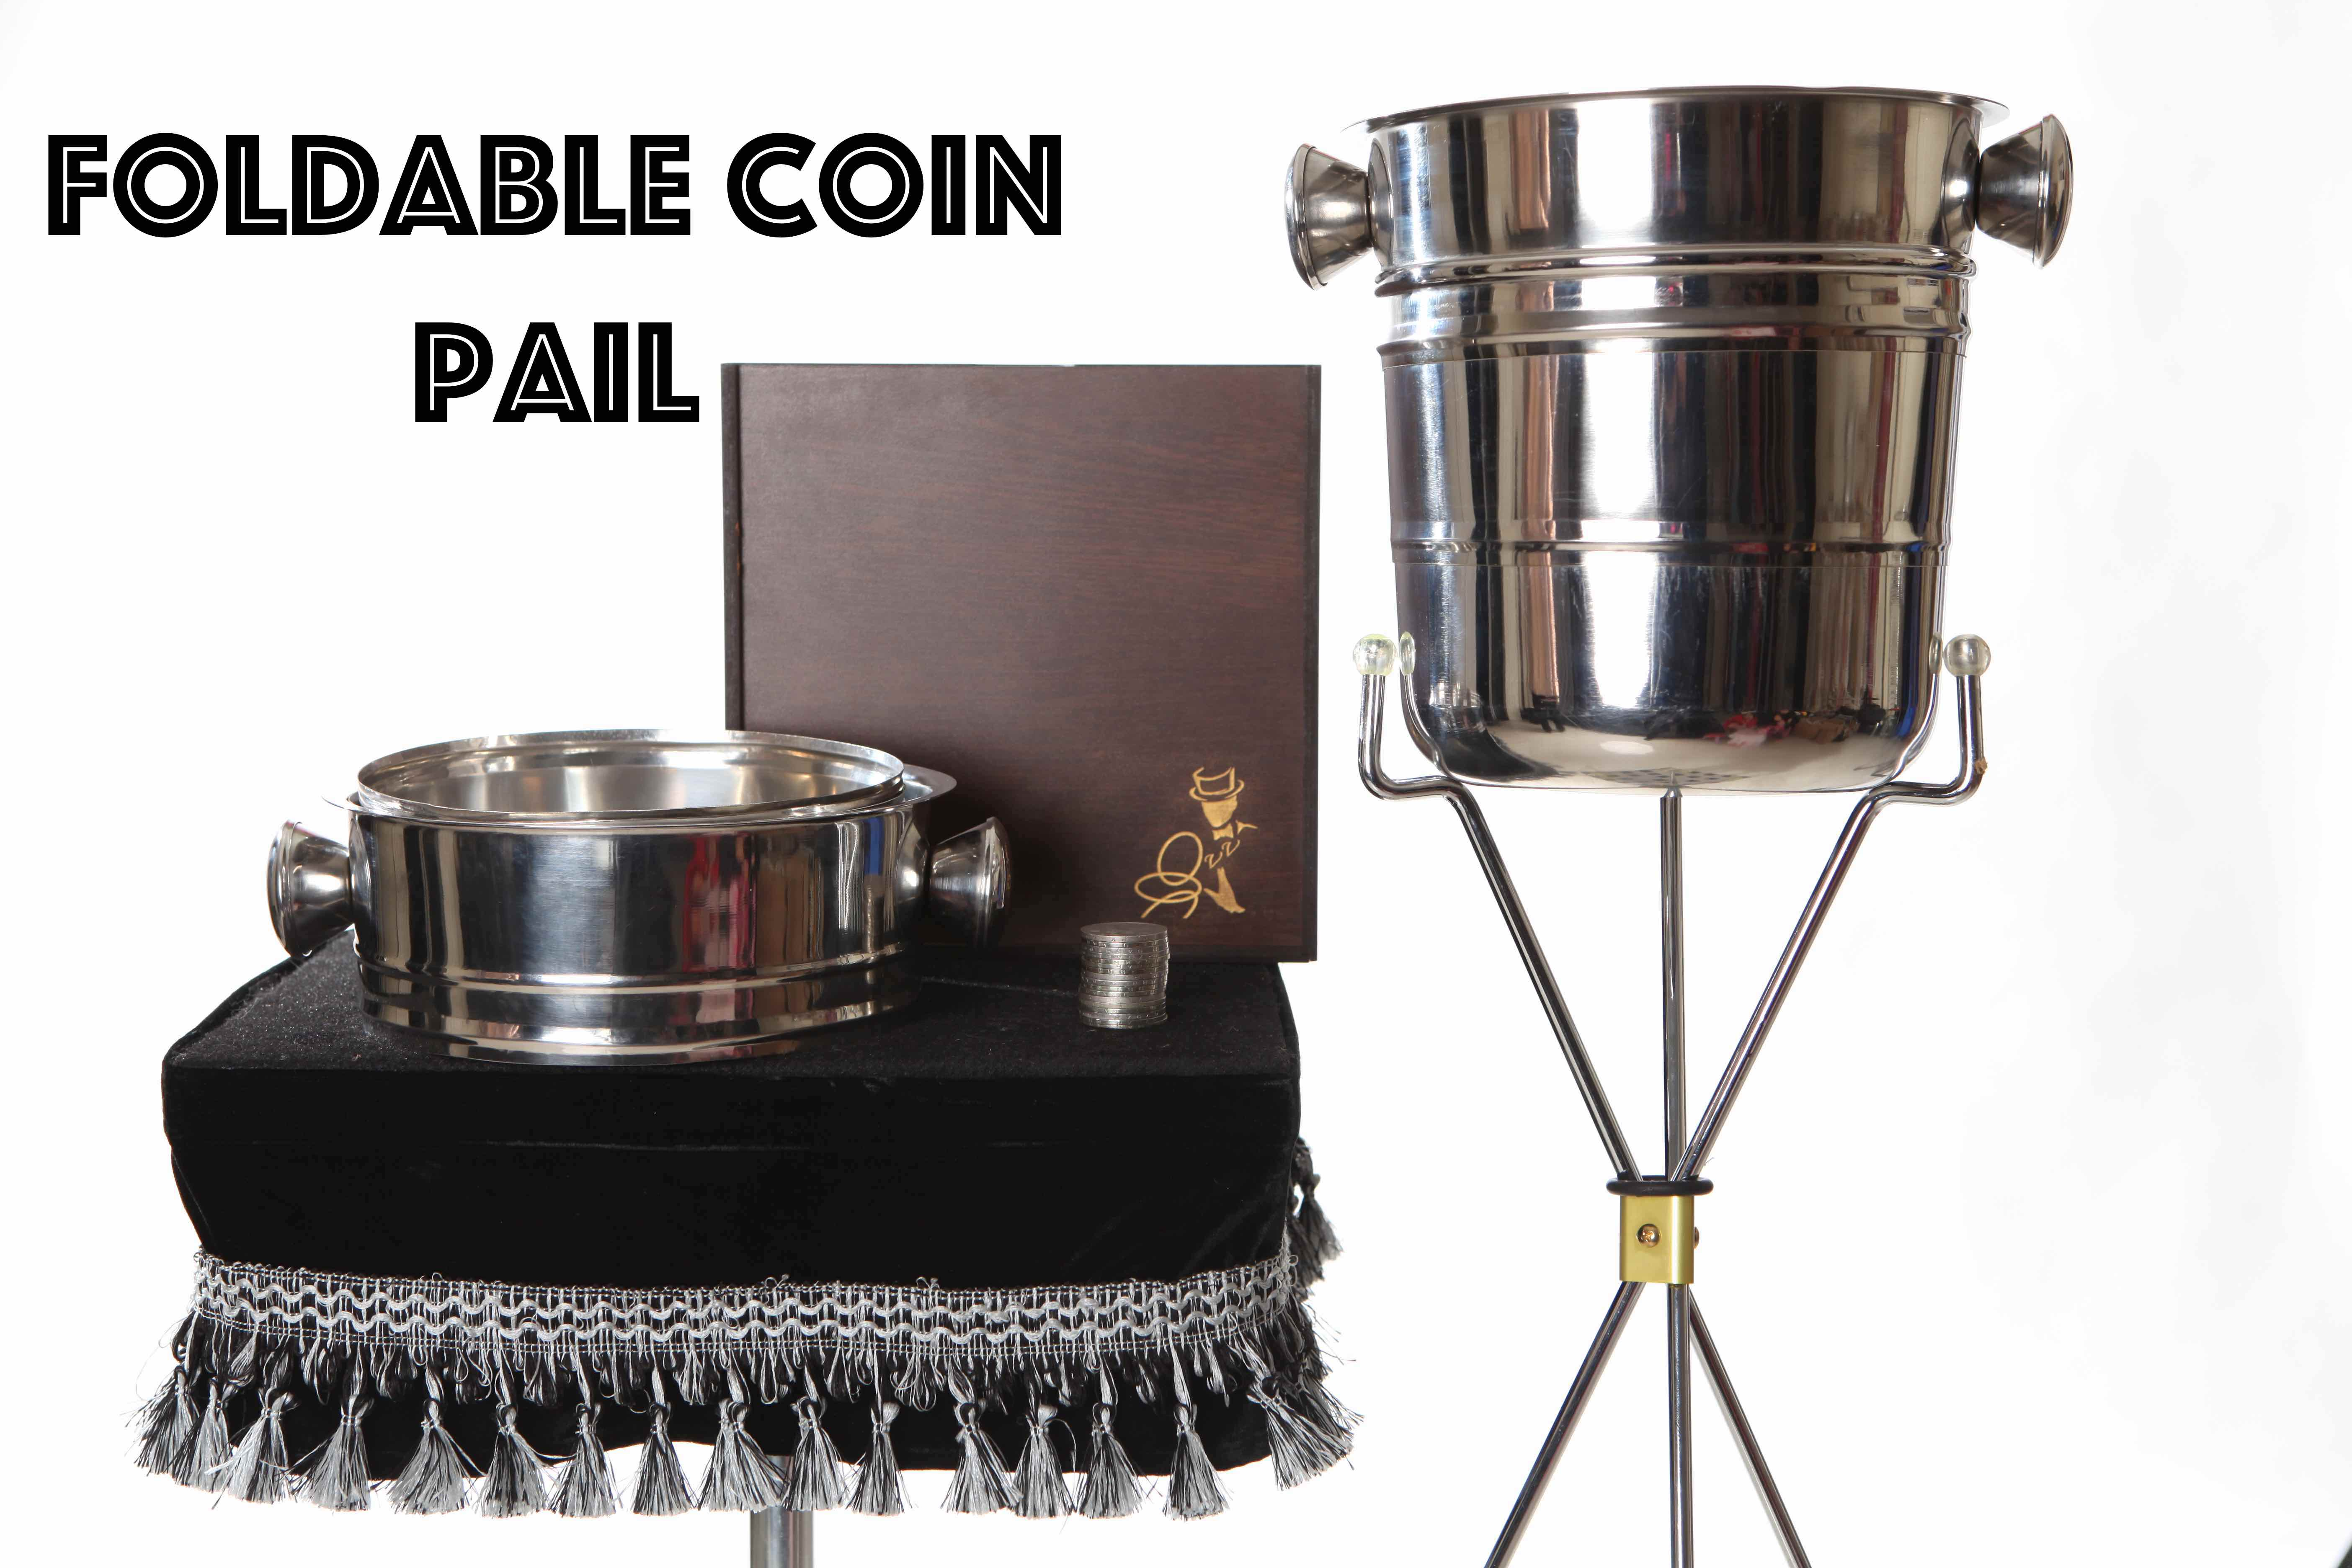 Foldable Coin Pail